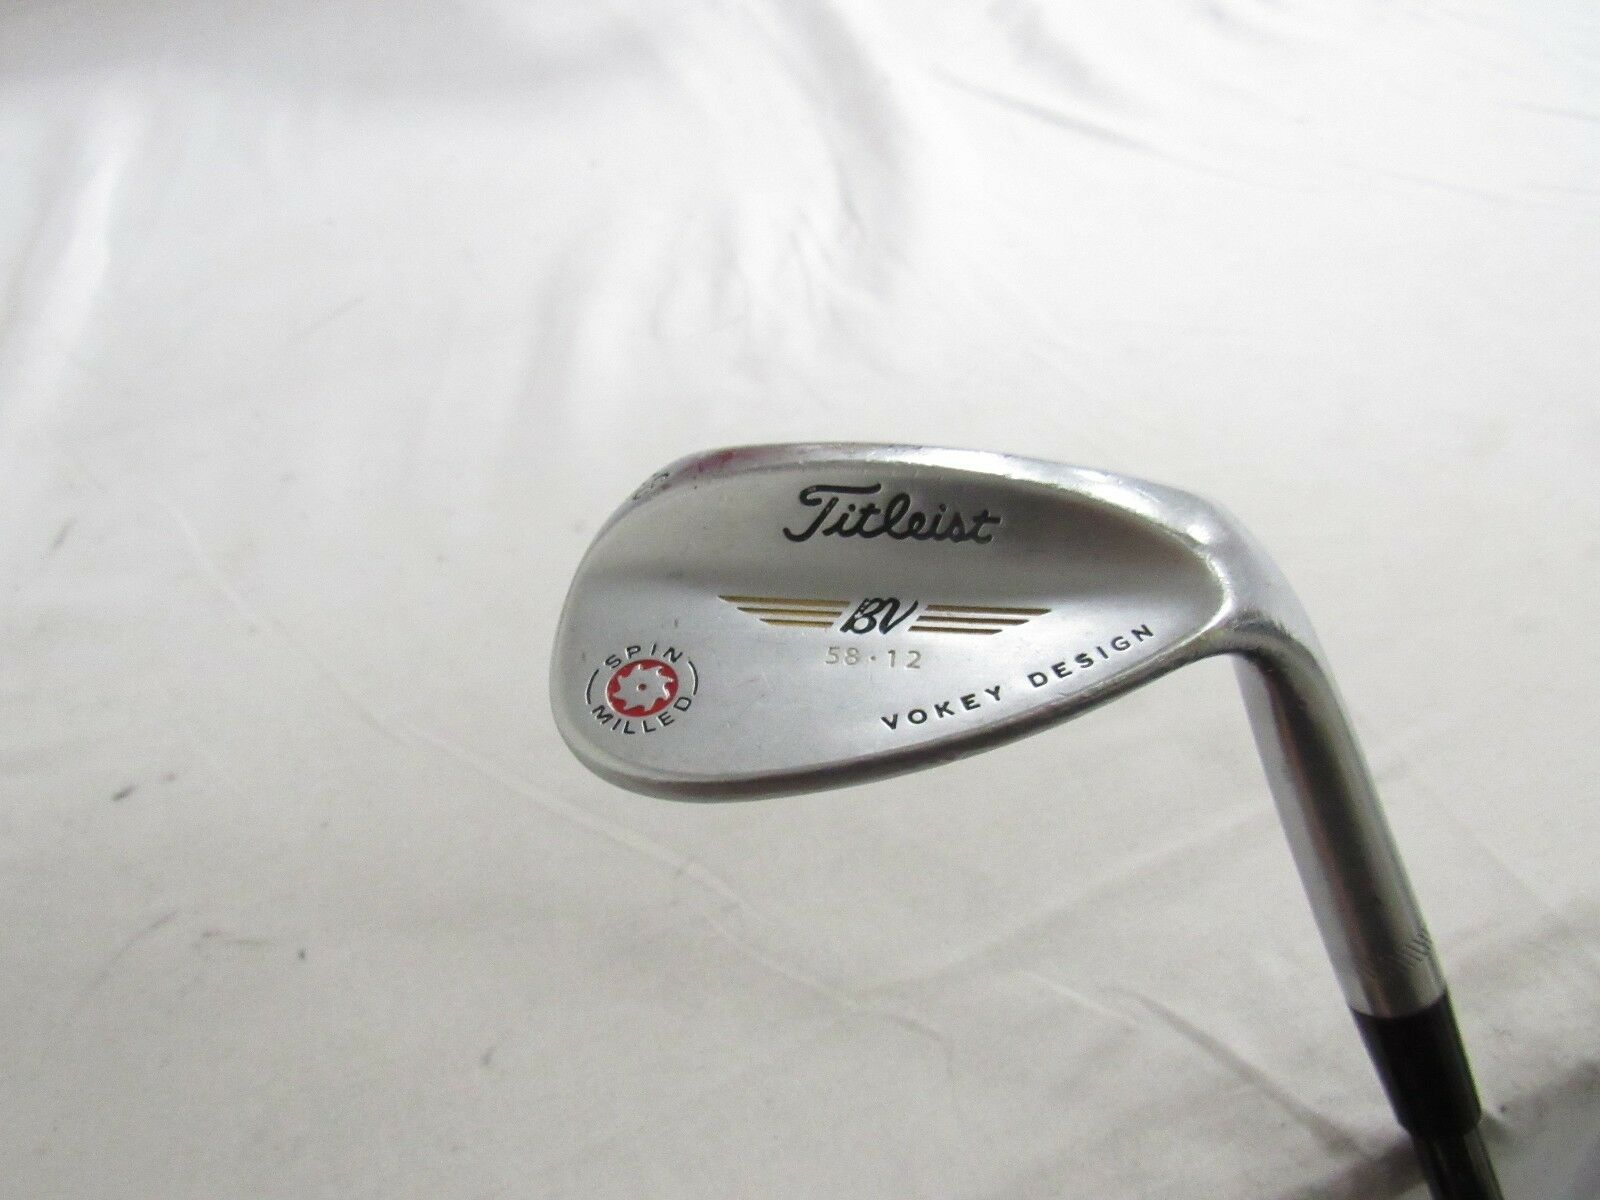 Titleist Vokey Spin Milled 2009 58 Lob Wedge LW 58.12 KBS Wedge flex Steel RH